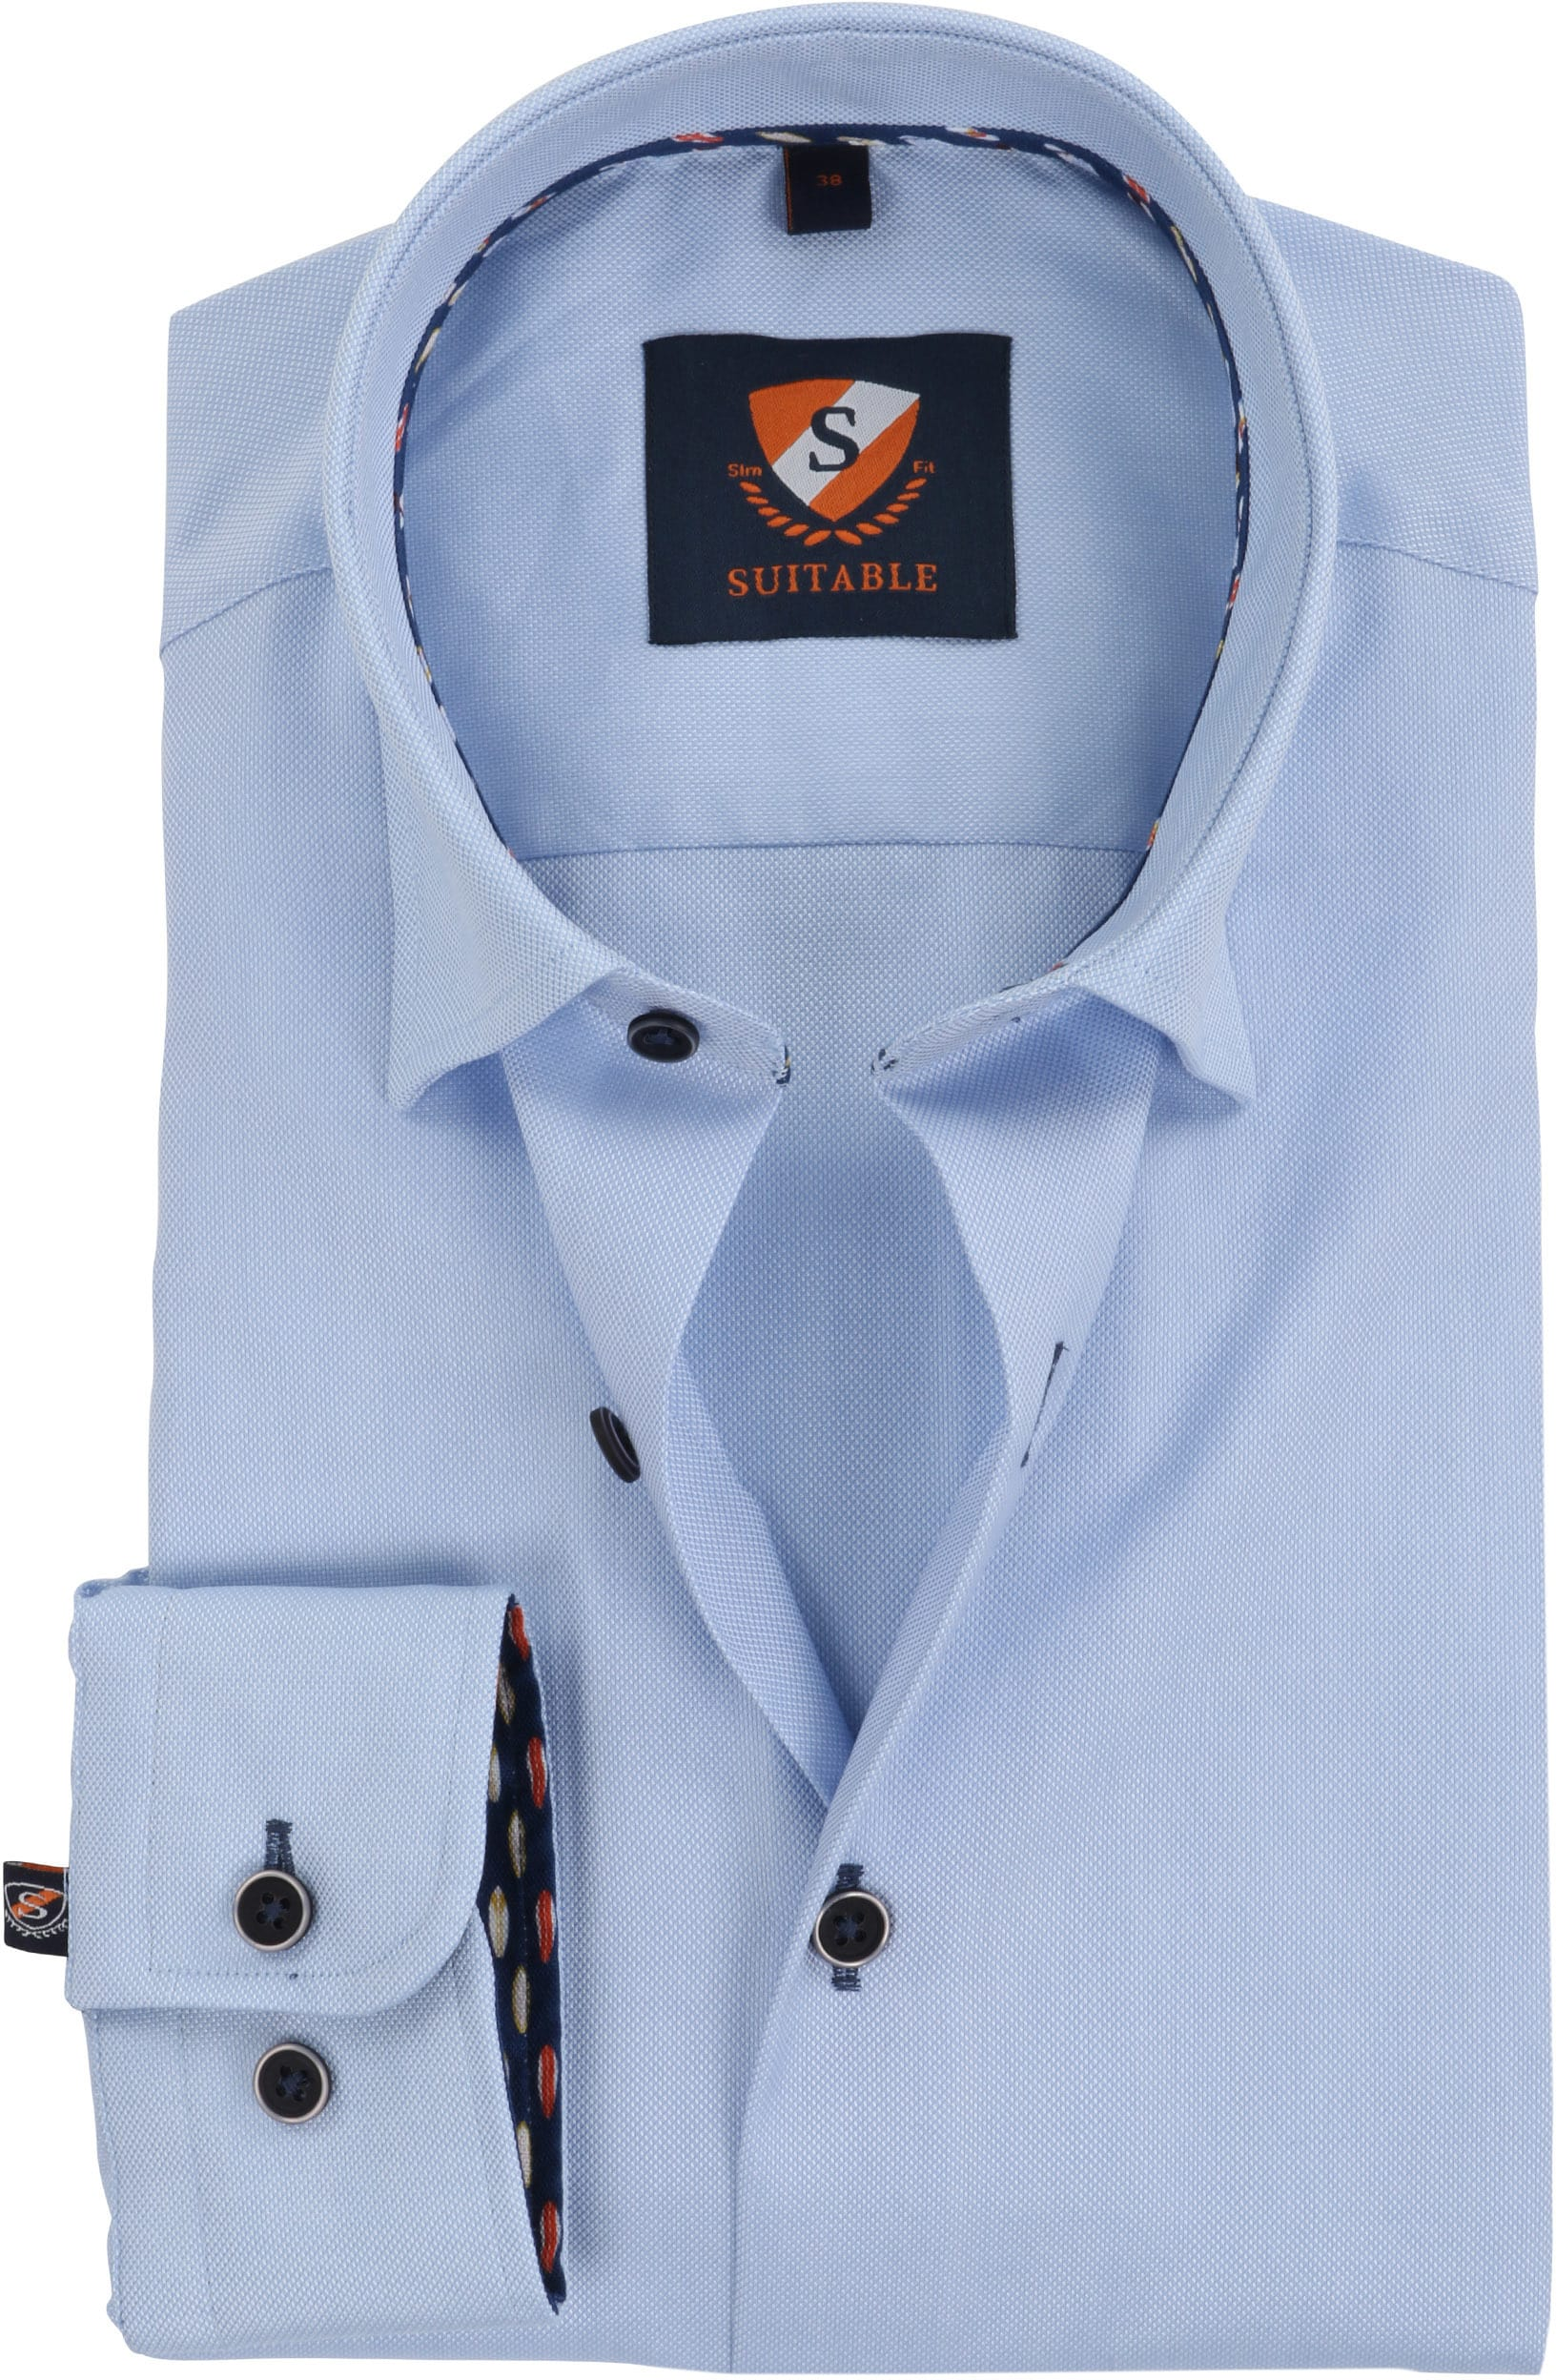 Suitable Overhemd Oxford Blauw SF foto 0